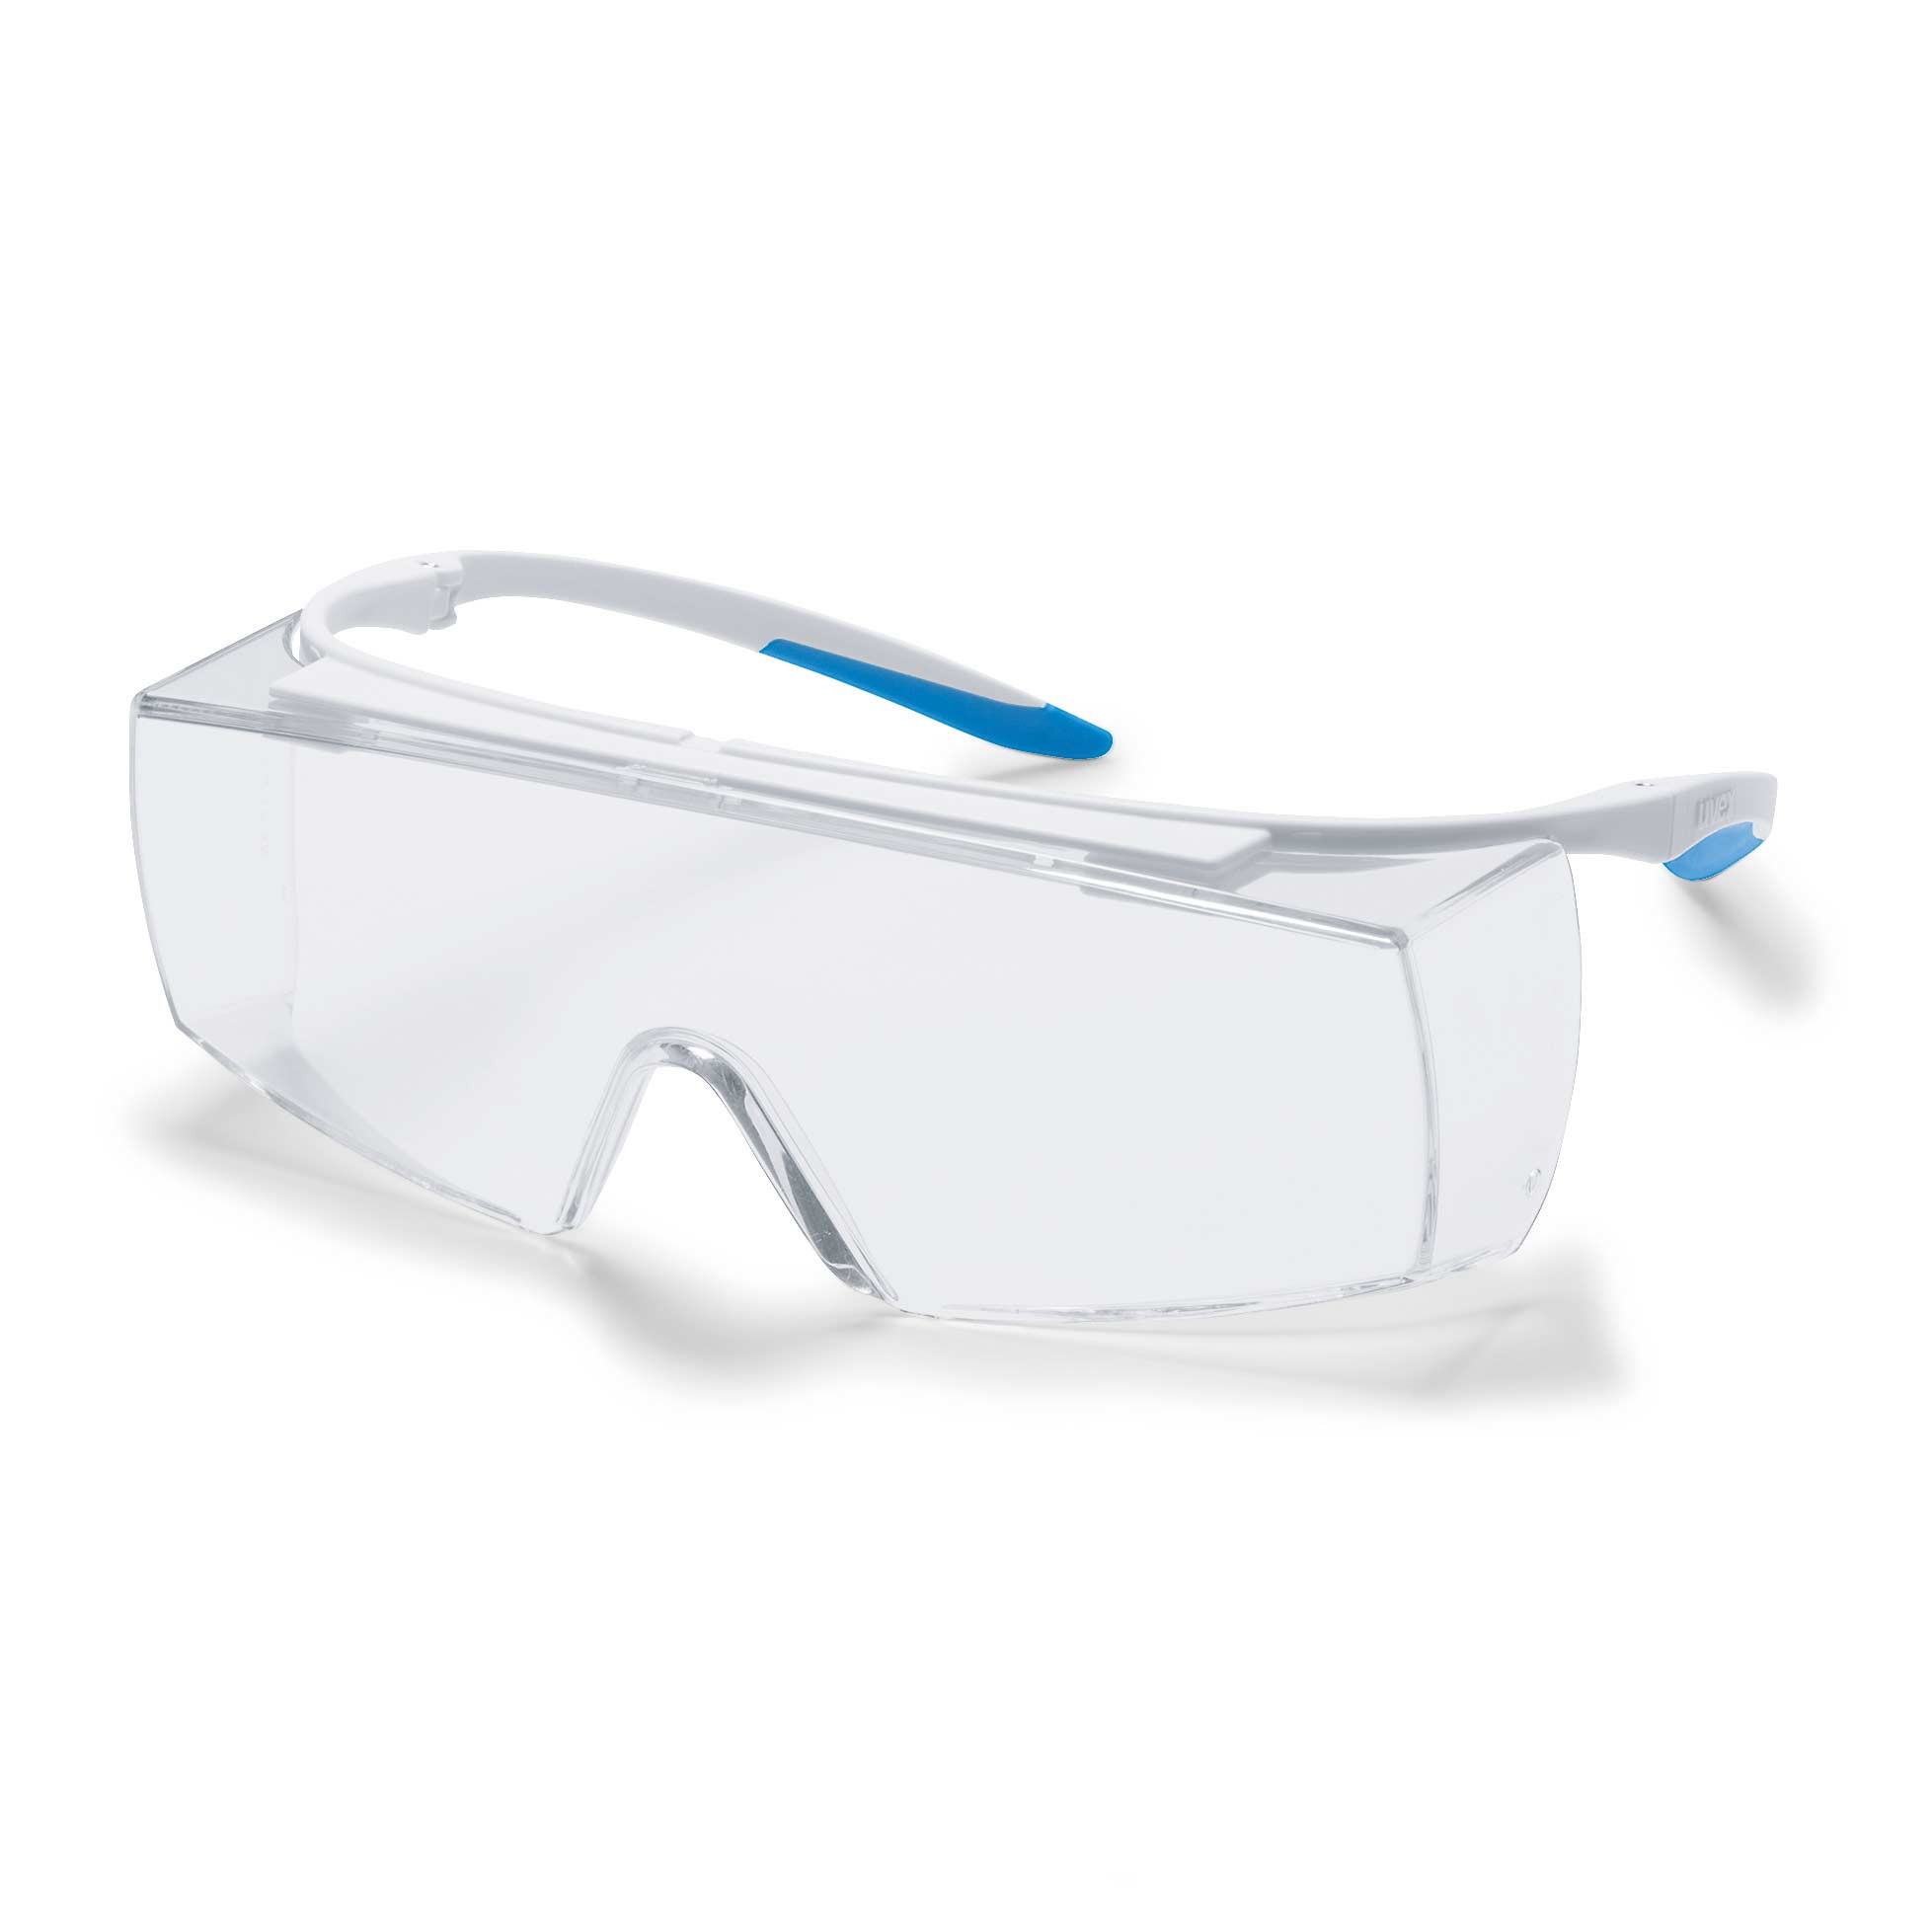 082772e510fd uvex super f OTG CR spectacles | Safety glasses | uvex safety